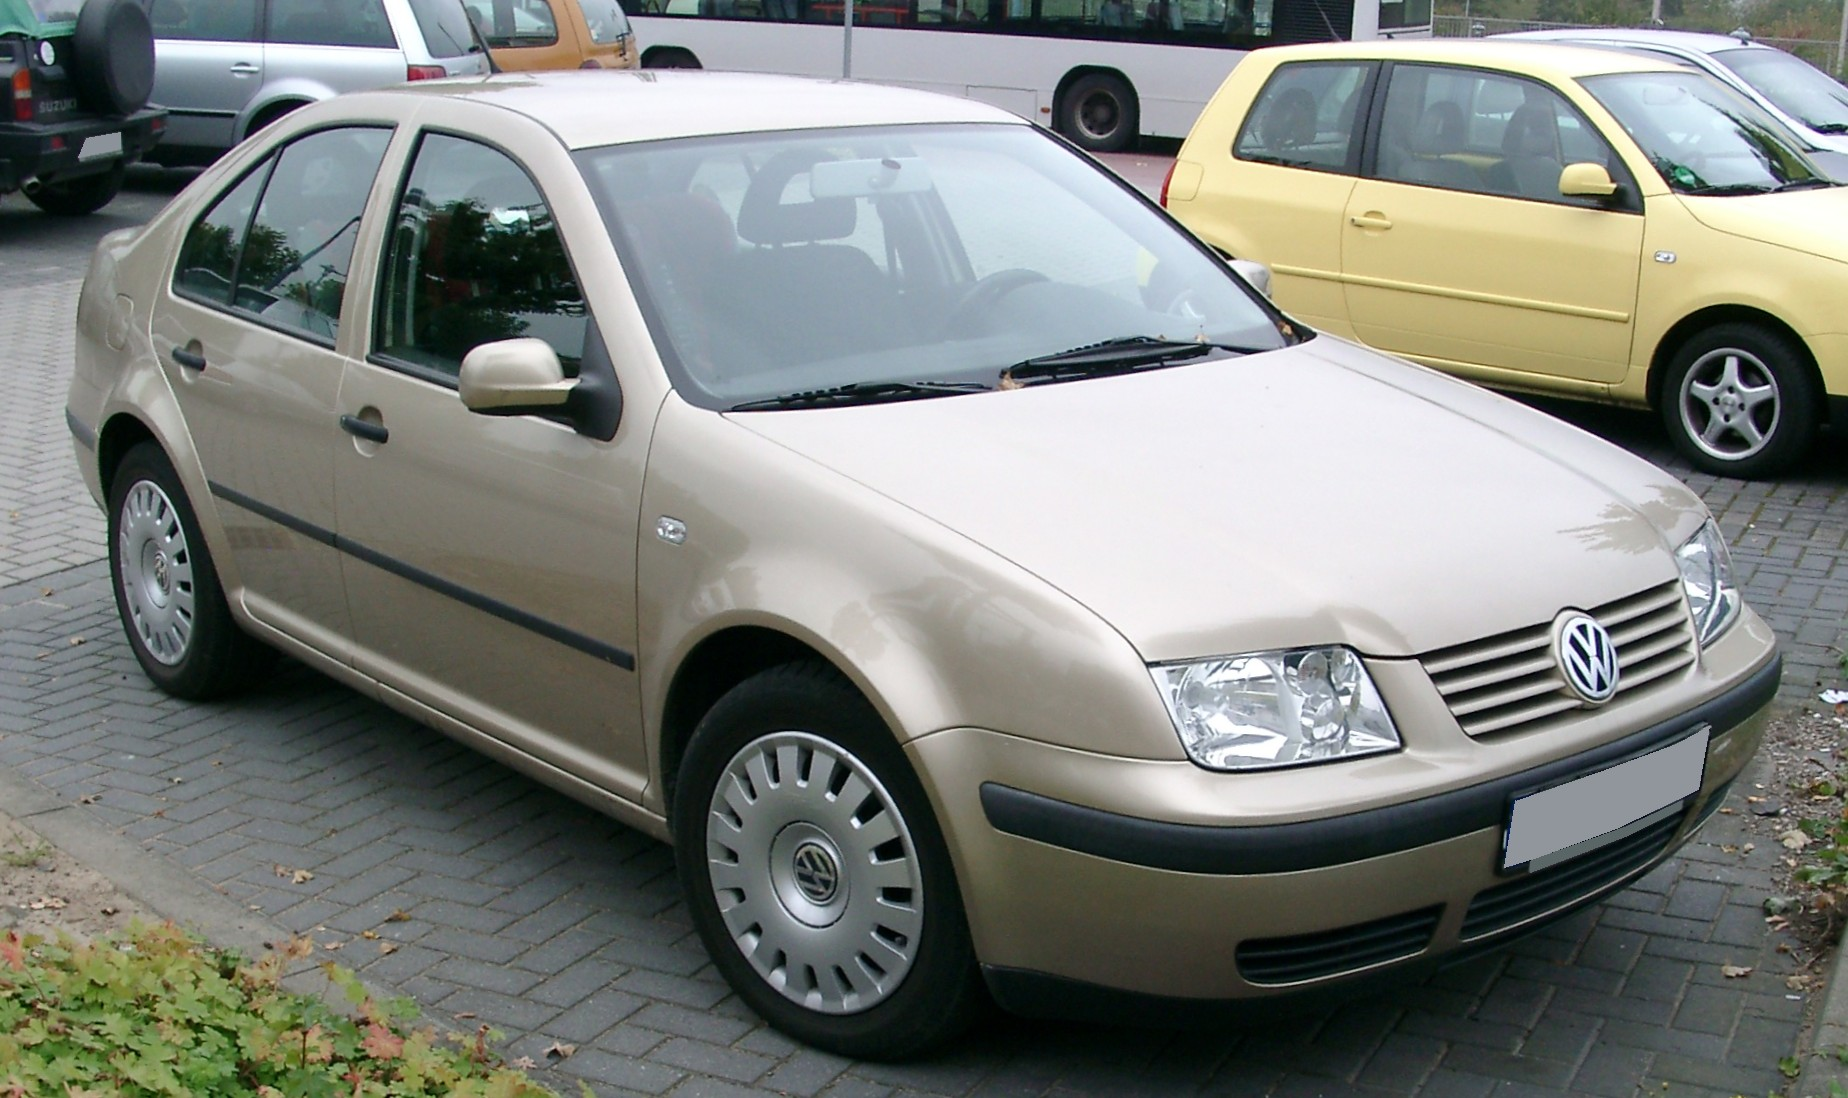 Description VW Bora front 20071012.jpg